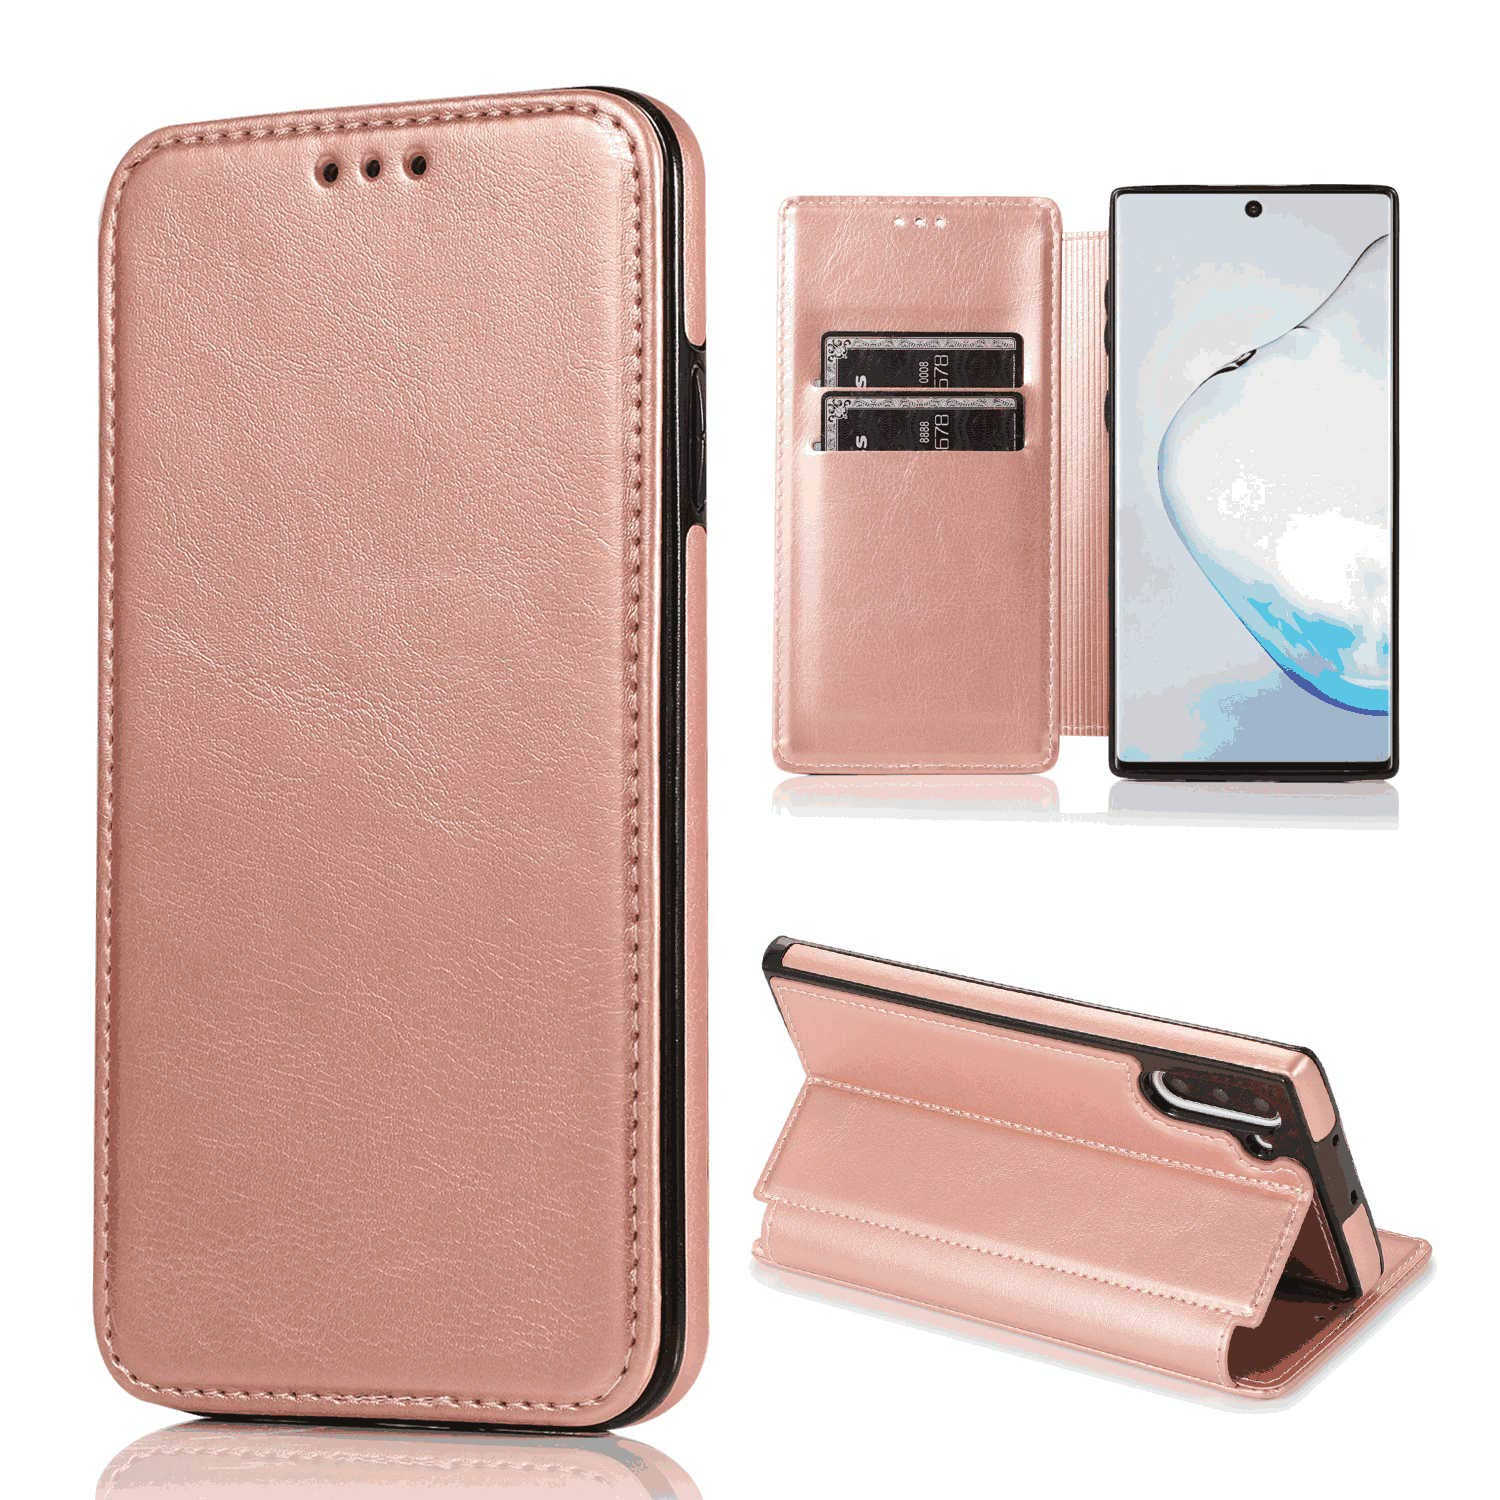 PU Leather Case Compatible with iPhone 7 Cell Phone Business-Design Flip Cover for iPhone 7